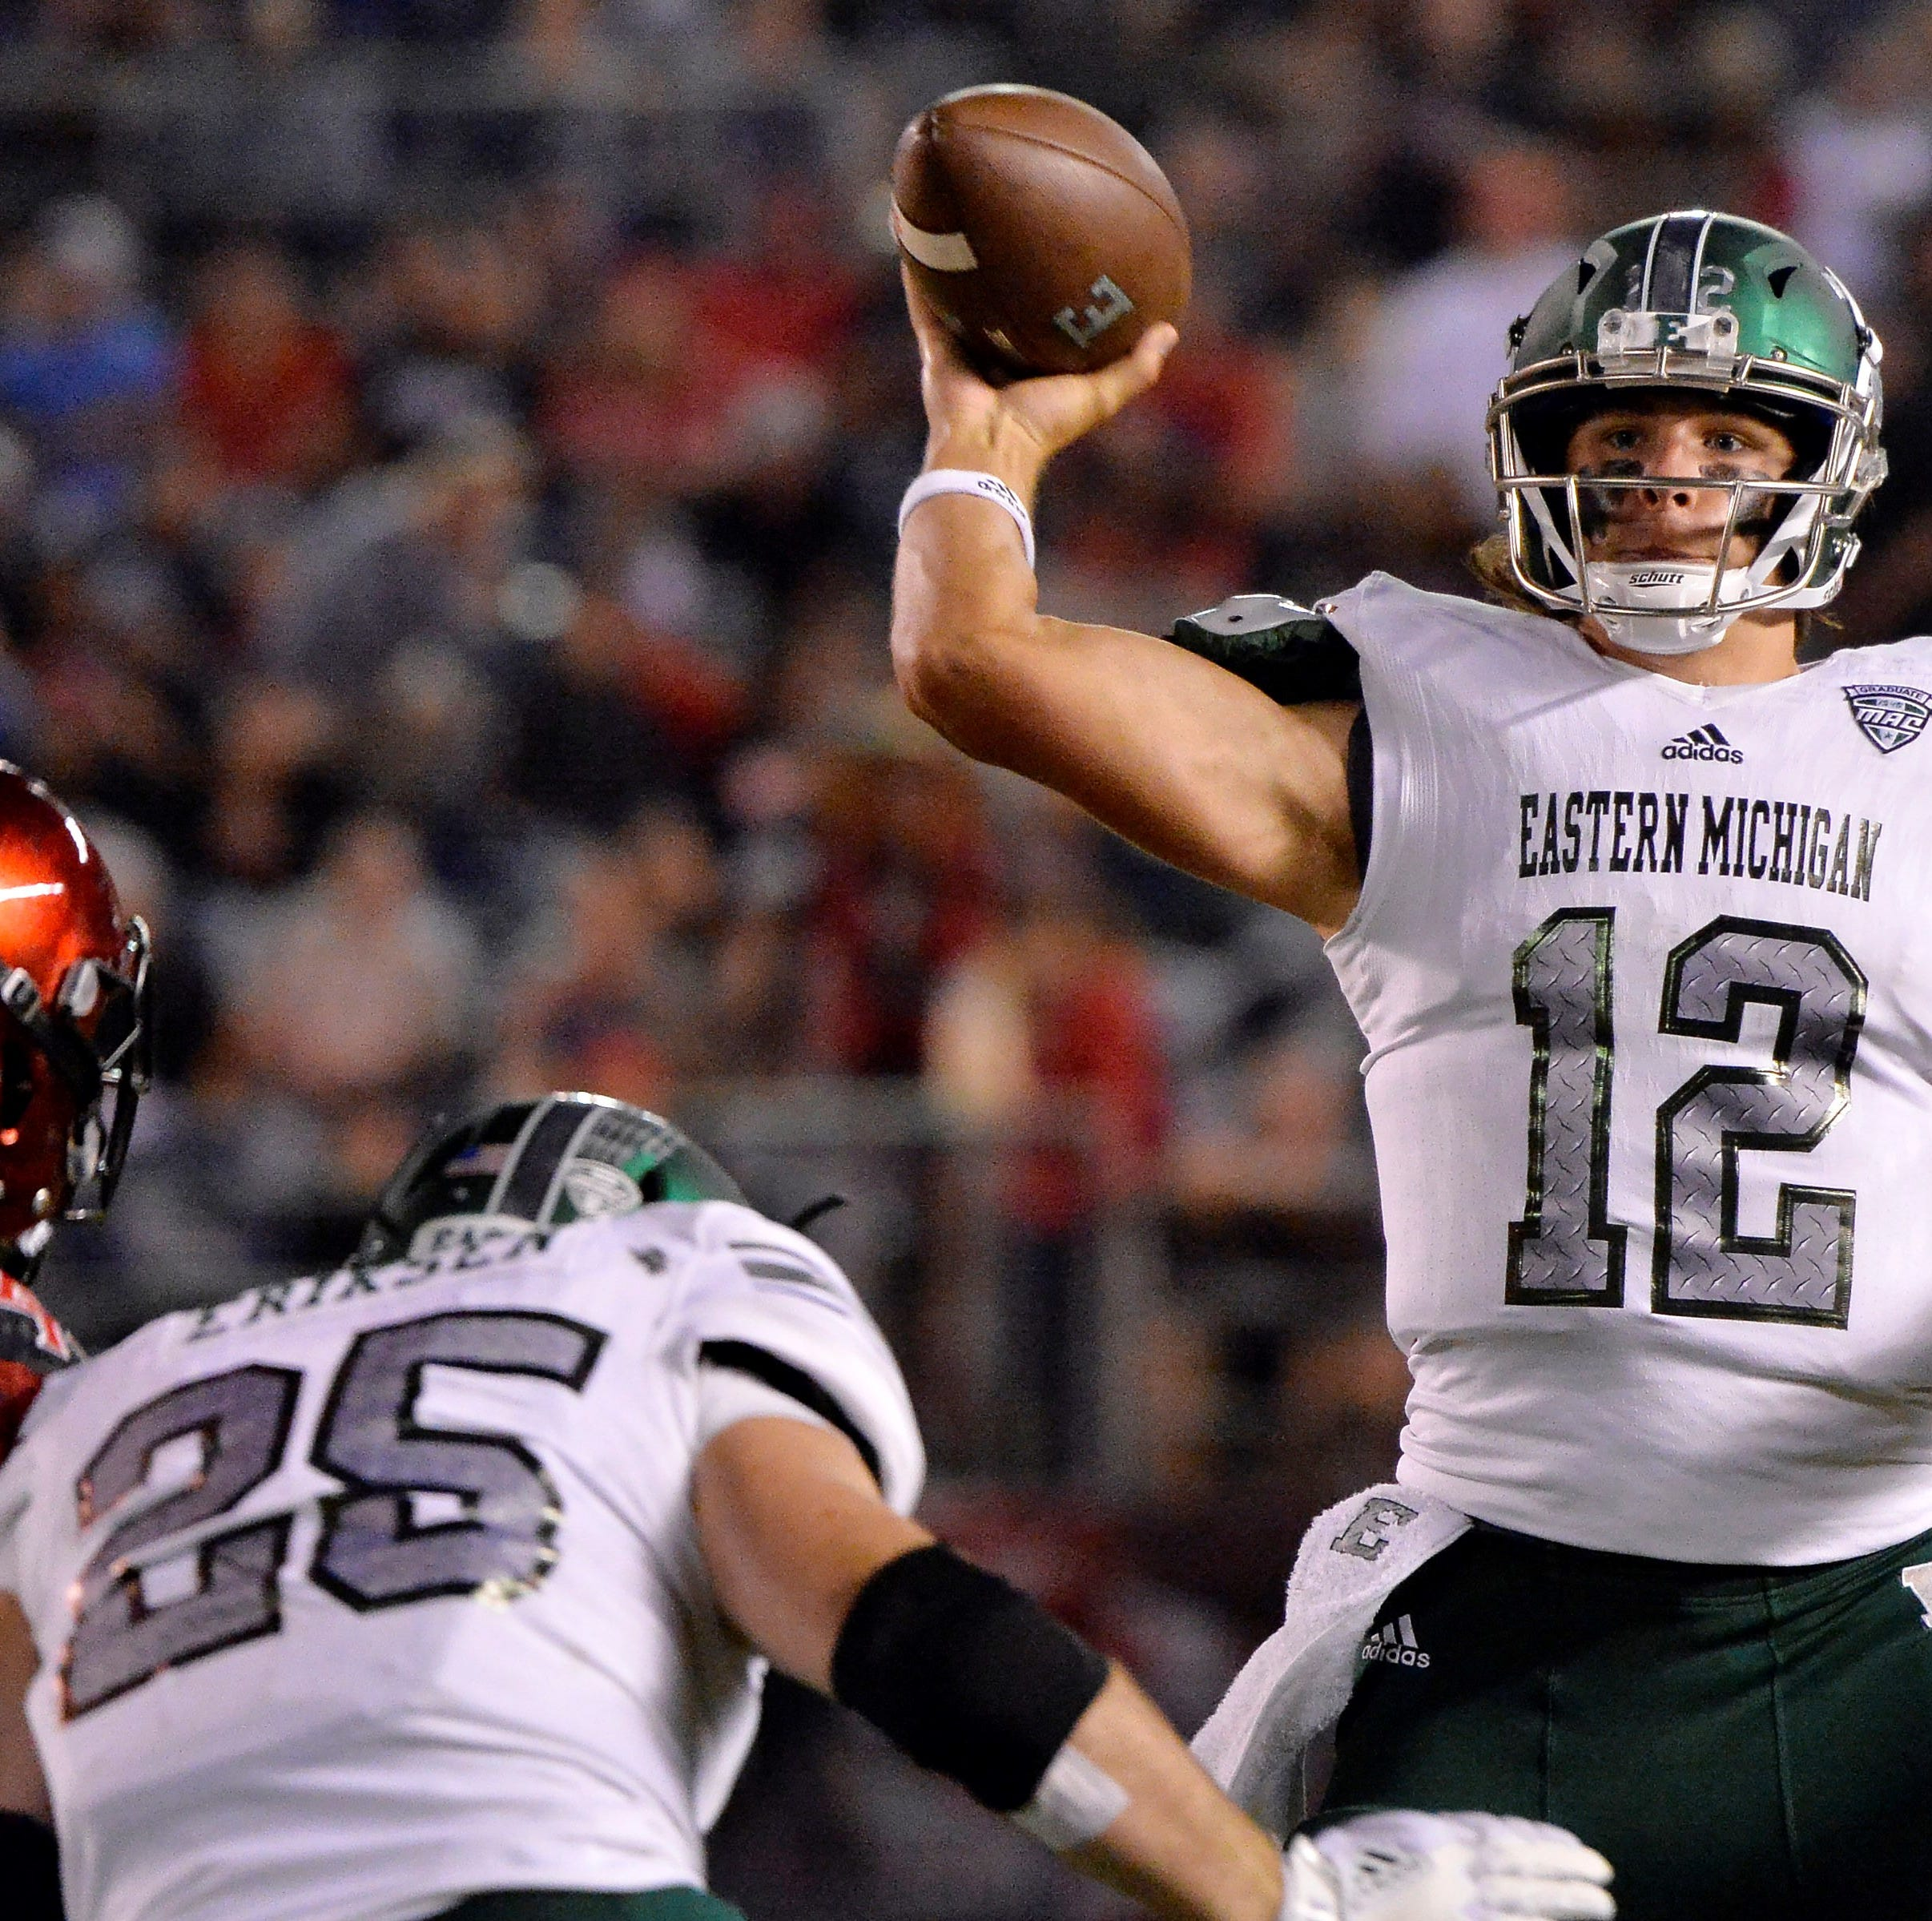 Sep 22, 2018; San Diego, CA, USA; Eastern Michigan Eagles quarterback Tyler Wiegers (12) jumps to pass during the second quarter against the San Diego State Aztecs at SDCCU Stadium. Mandatory Credit: Jake Roth-USA TODAY Sports